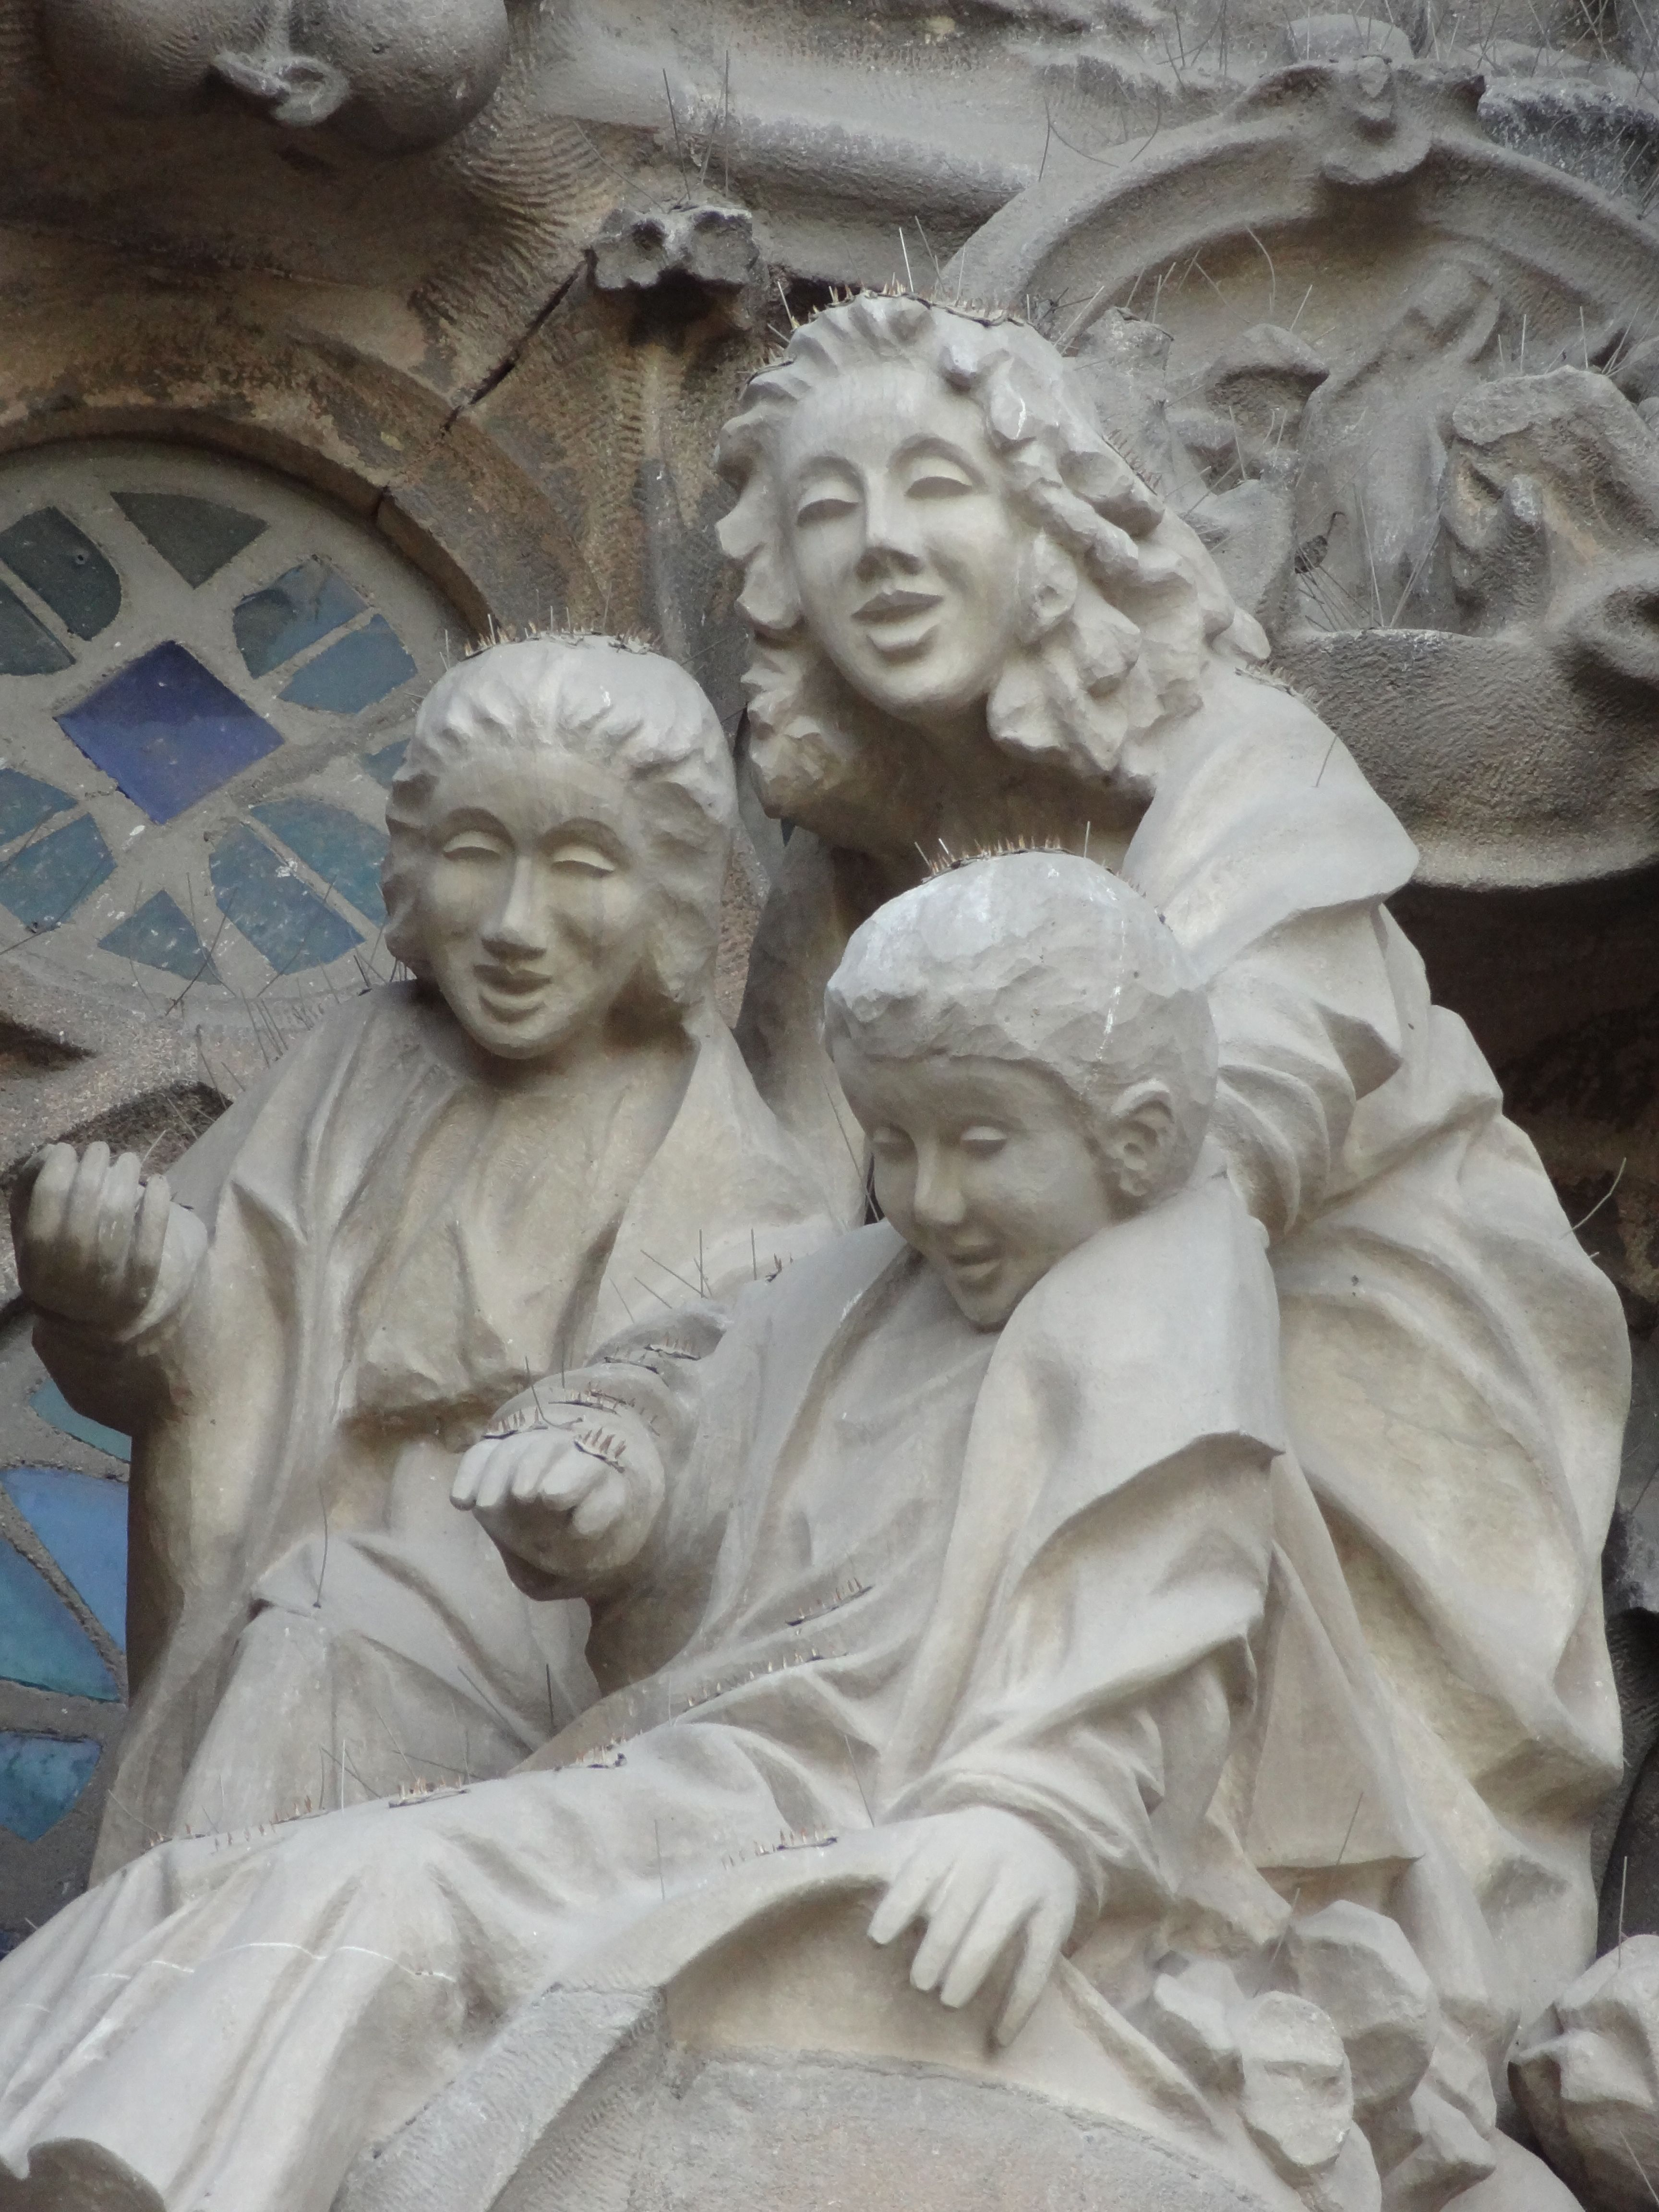 Nativity entrance to Basilica de la Sagrada Familia in Barcelona, Spain. One artist restoring the fascade is Japanese, so the angels have Asian faces. Love the diversity!